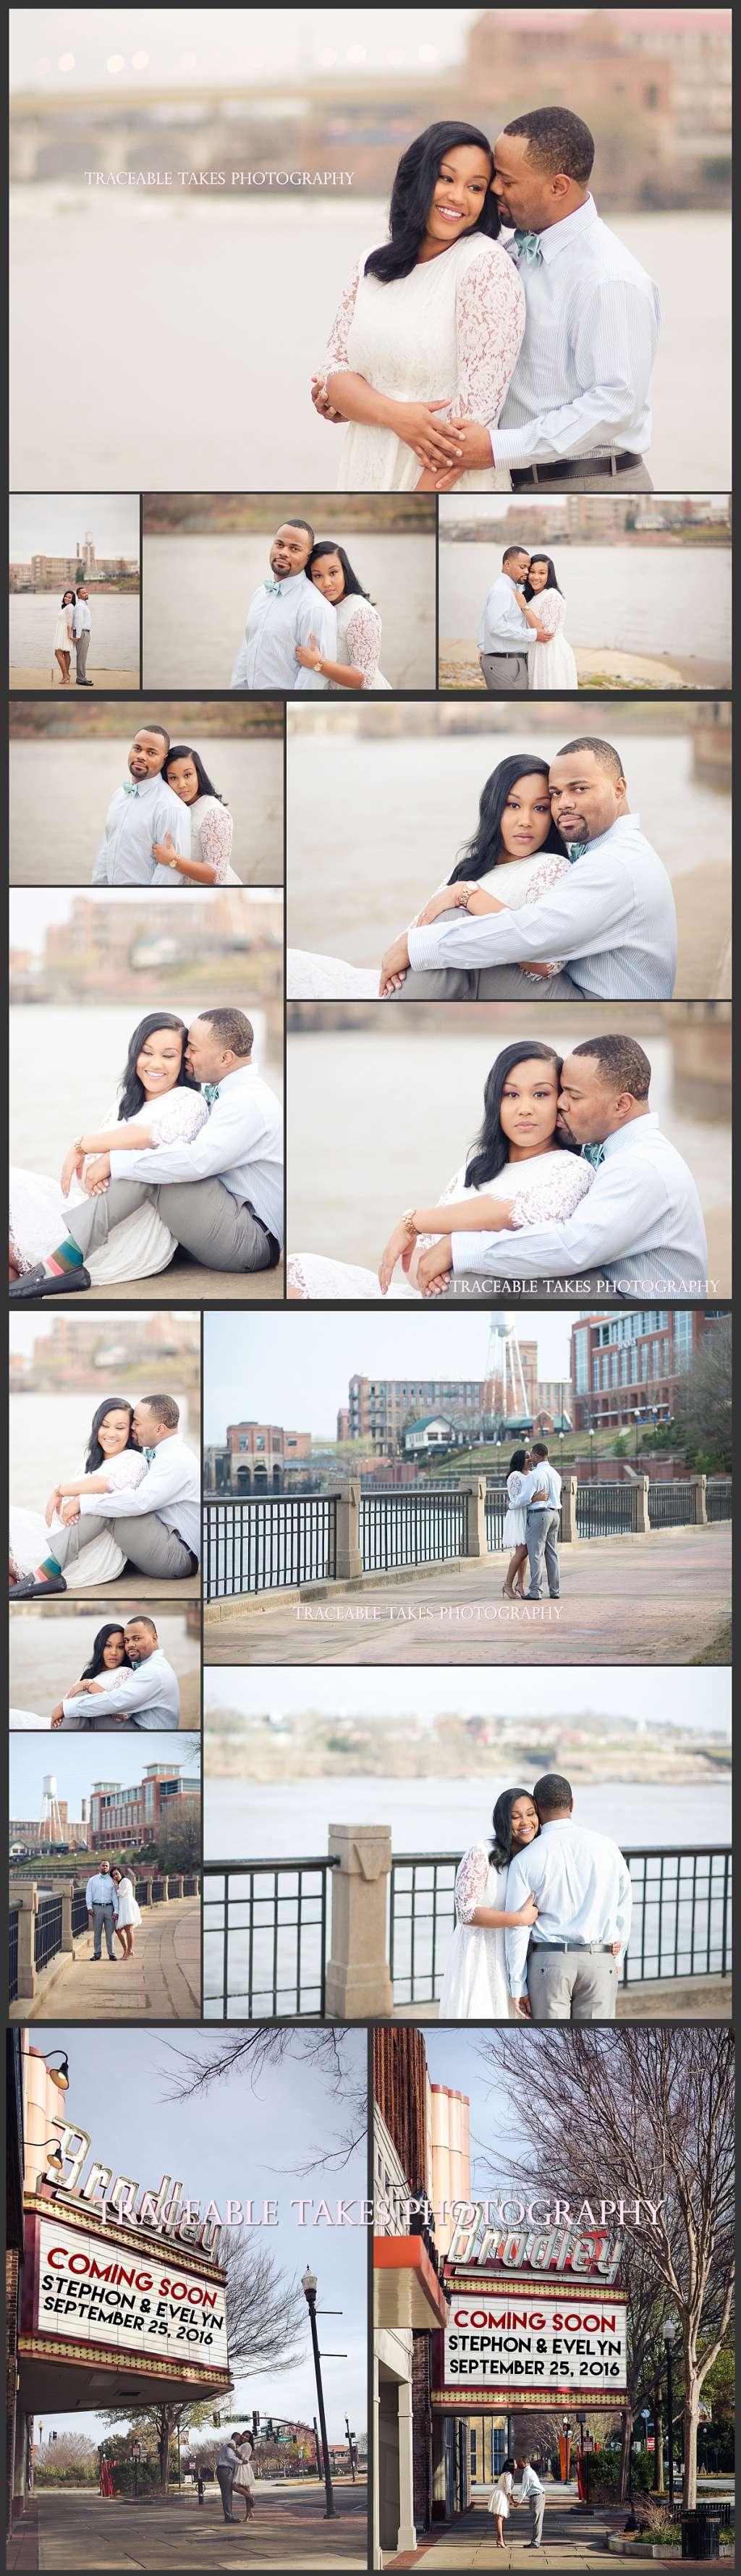 engagement-photoshoot-downtown-columbusga